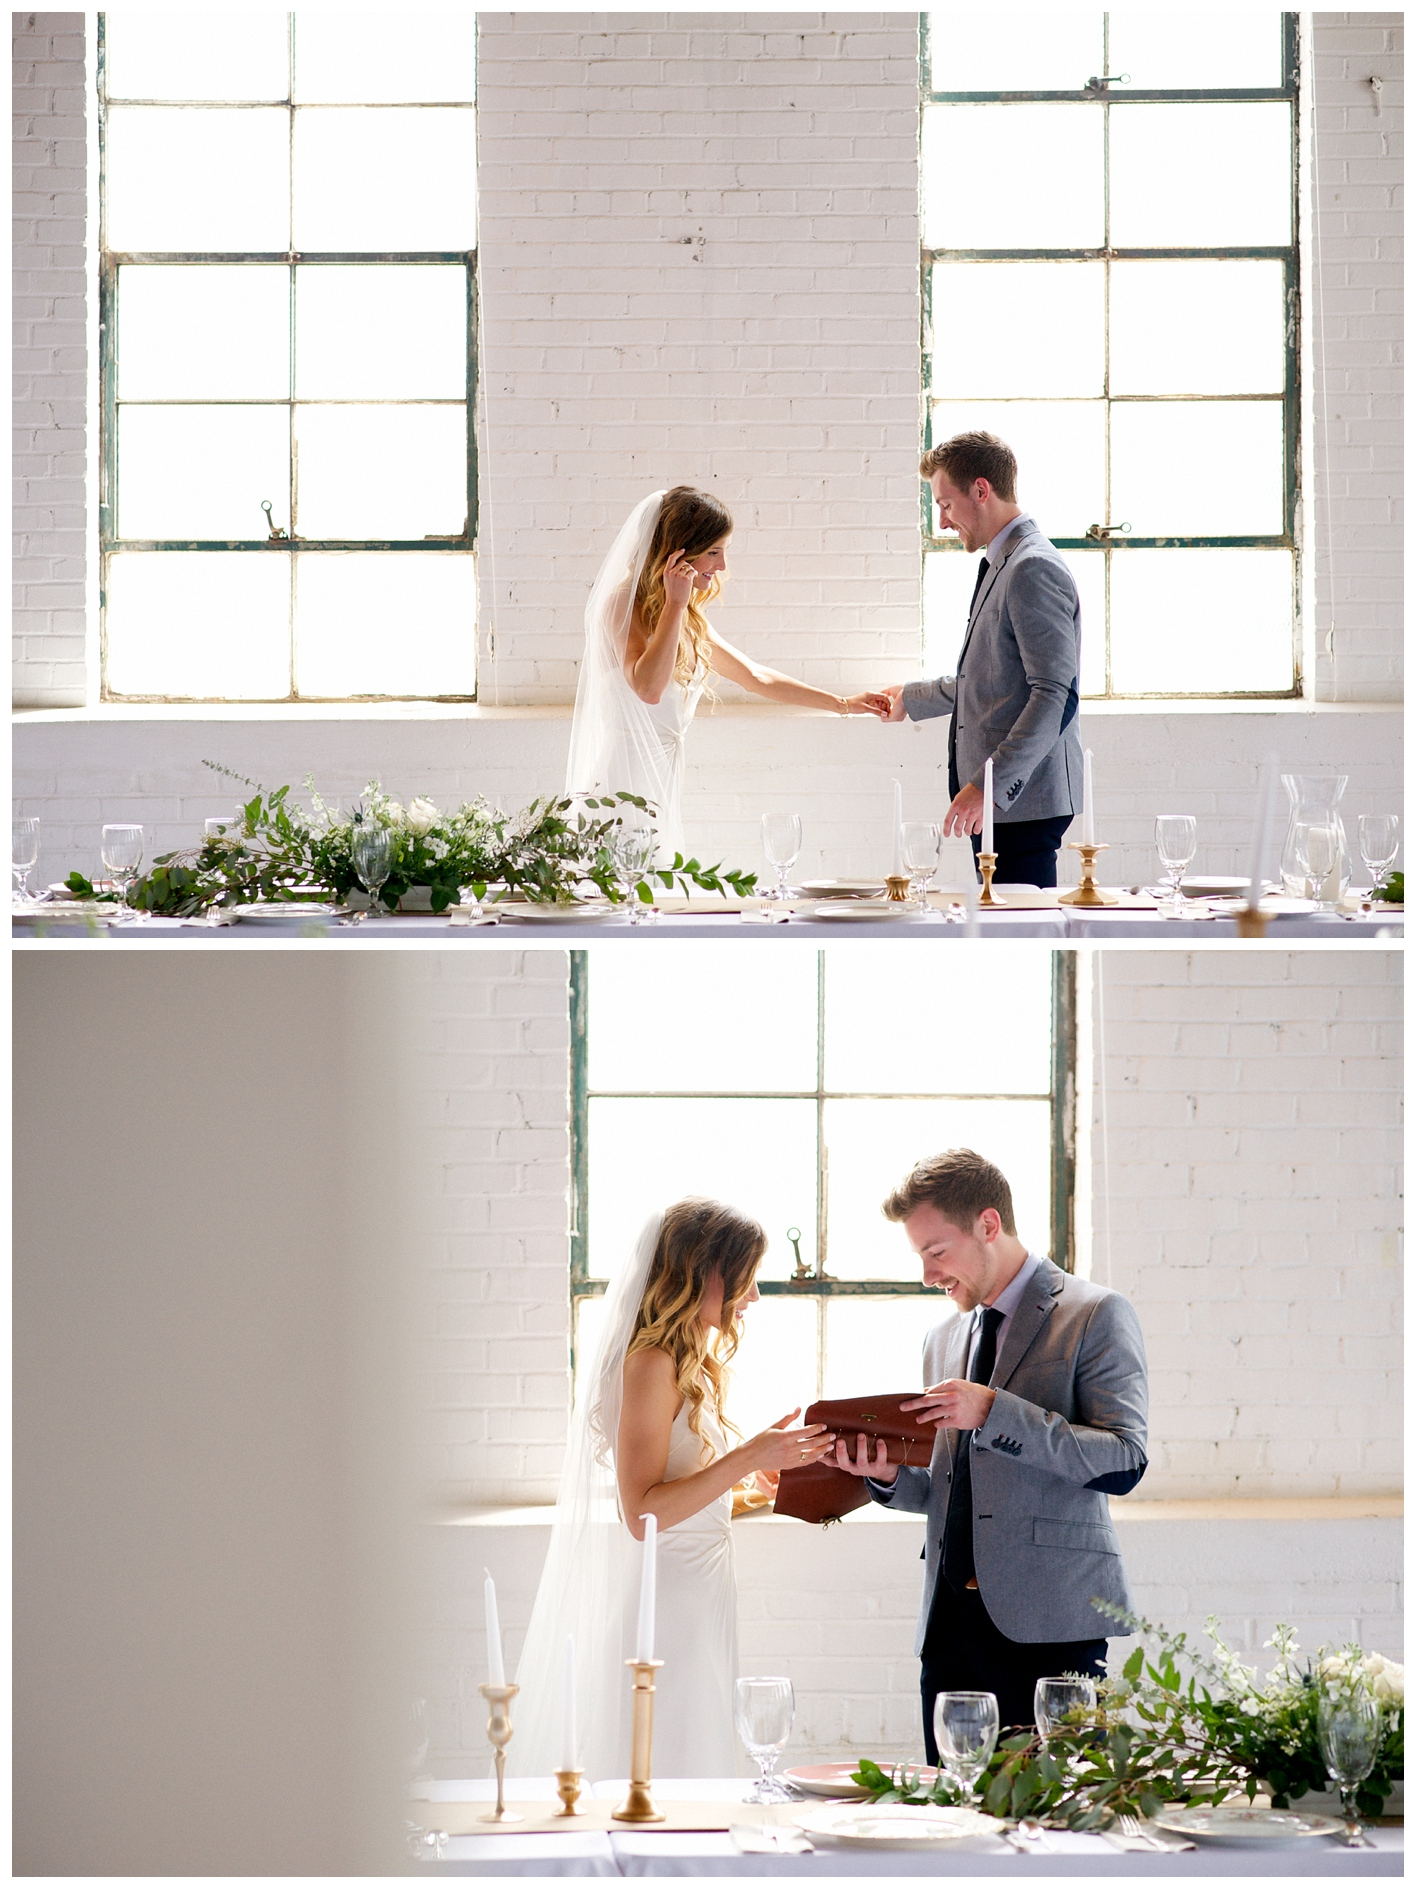 Bloom&Lo_AtlantaPhotographer_AmeliaTatnall_2015_Wedding_Georgia_Atlanta_AmbientStudio_Sara&Jared_Blog_Portfolio__0018.jpg